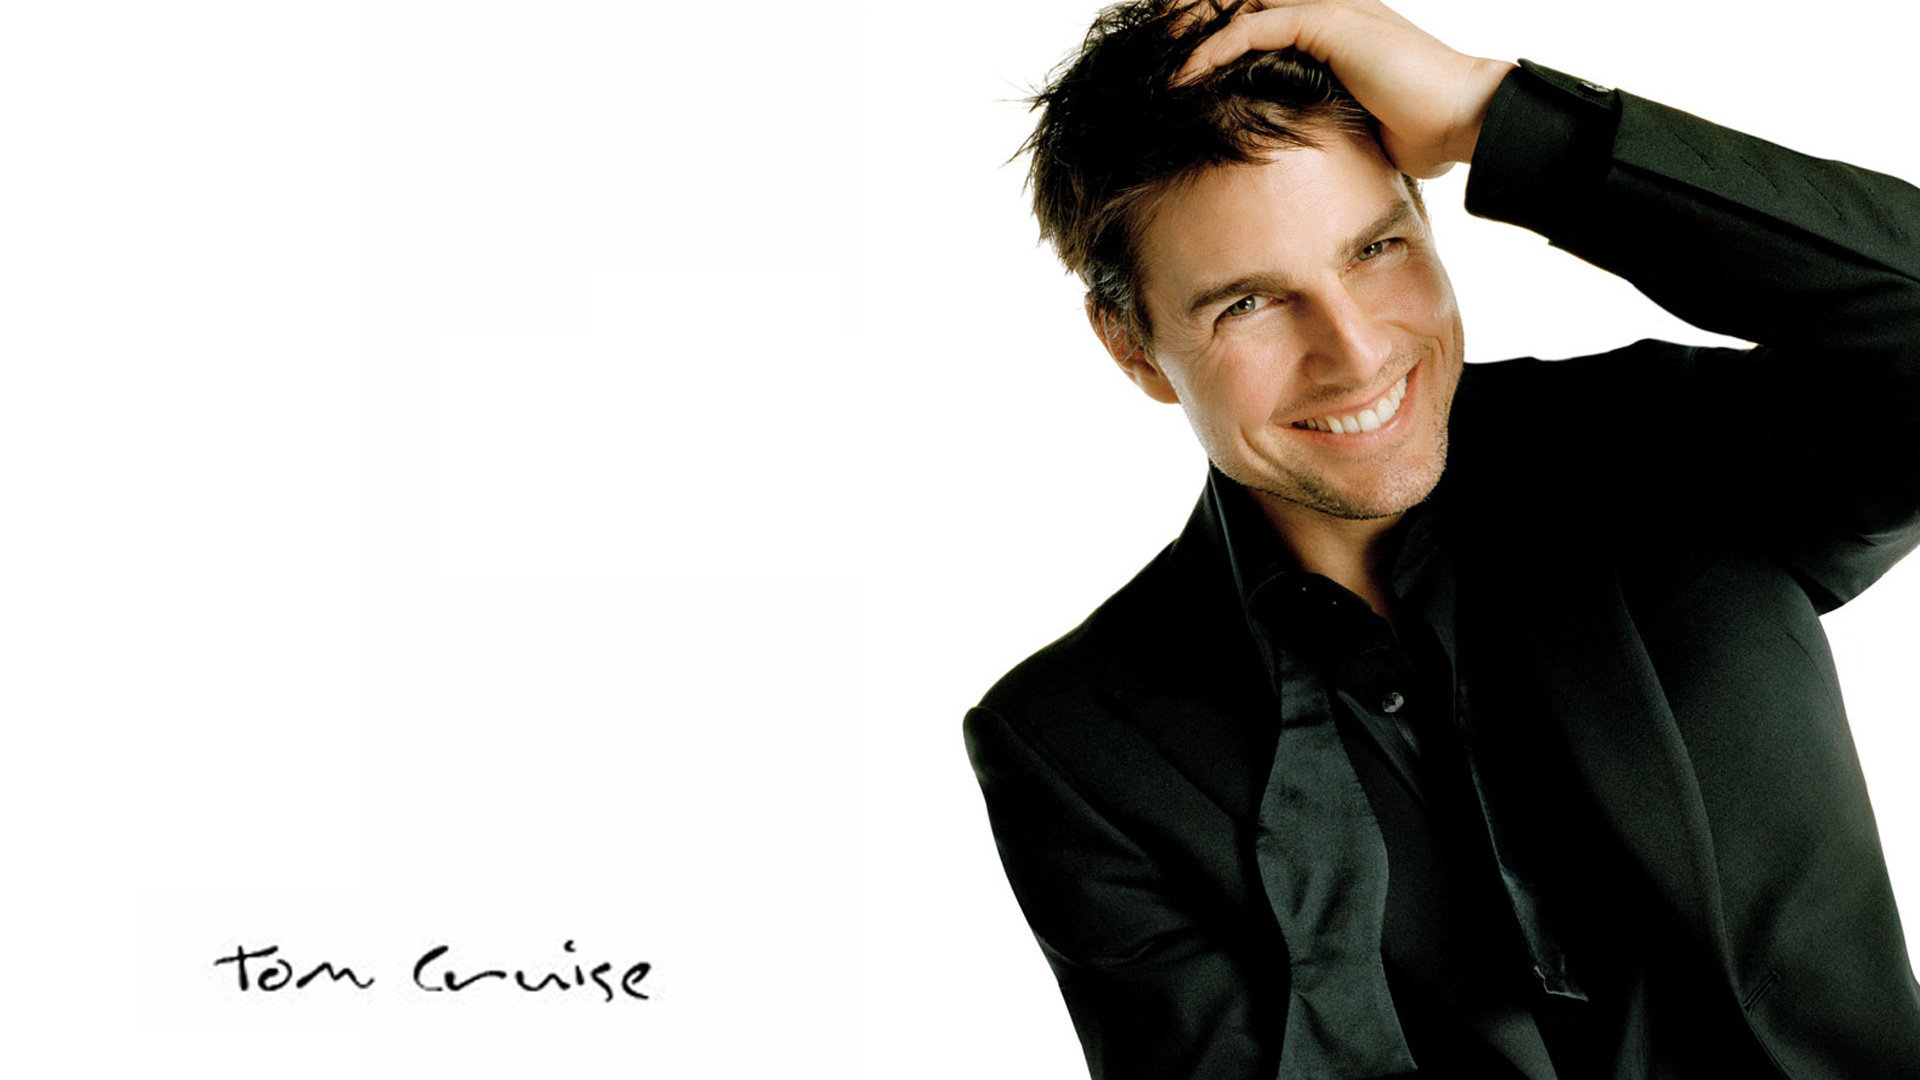 Awesome Tom Cruise free background ID:27413 for hd 1920x1080 computer